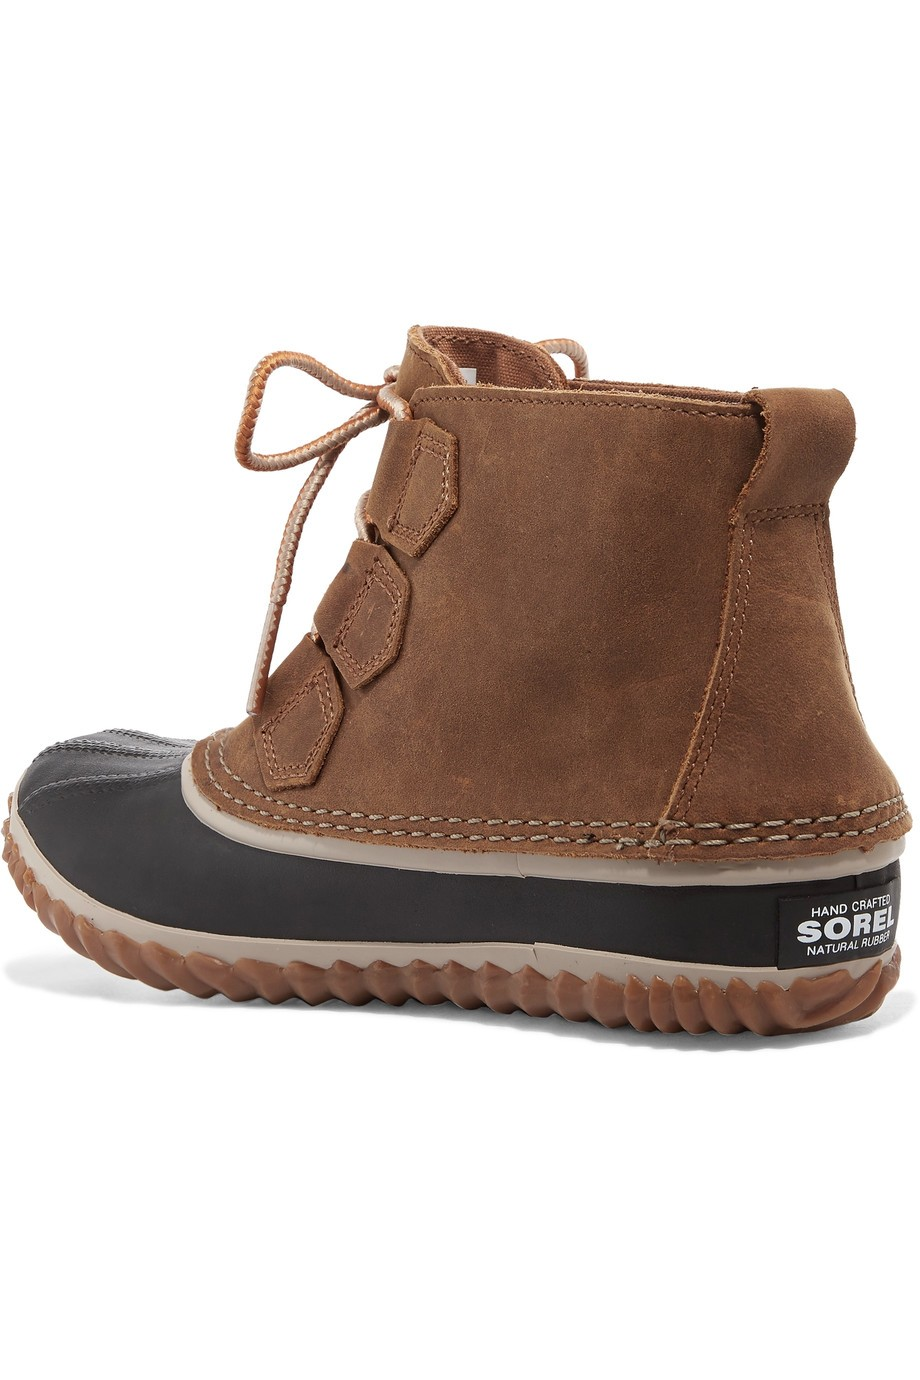 rubber boots Sorel buy rubber boots Sorel internet shop